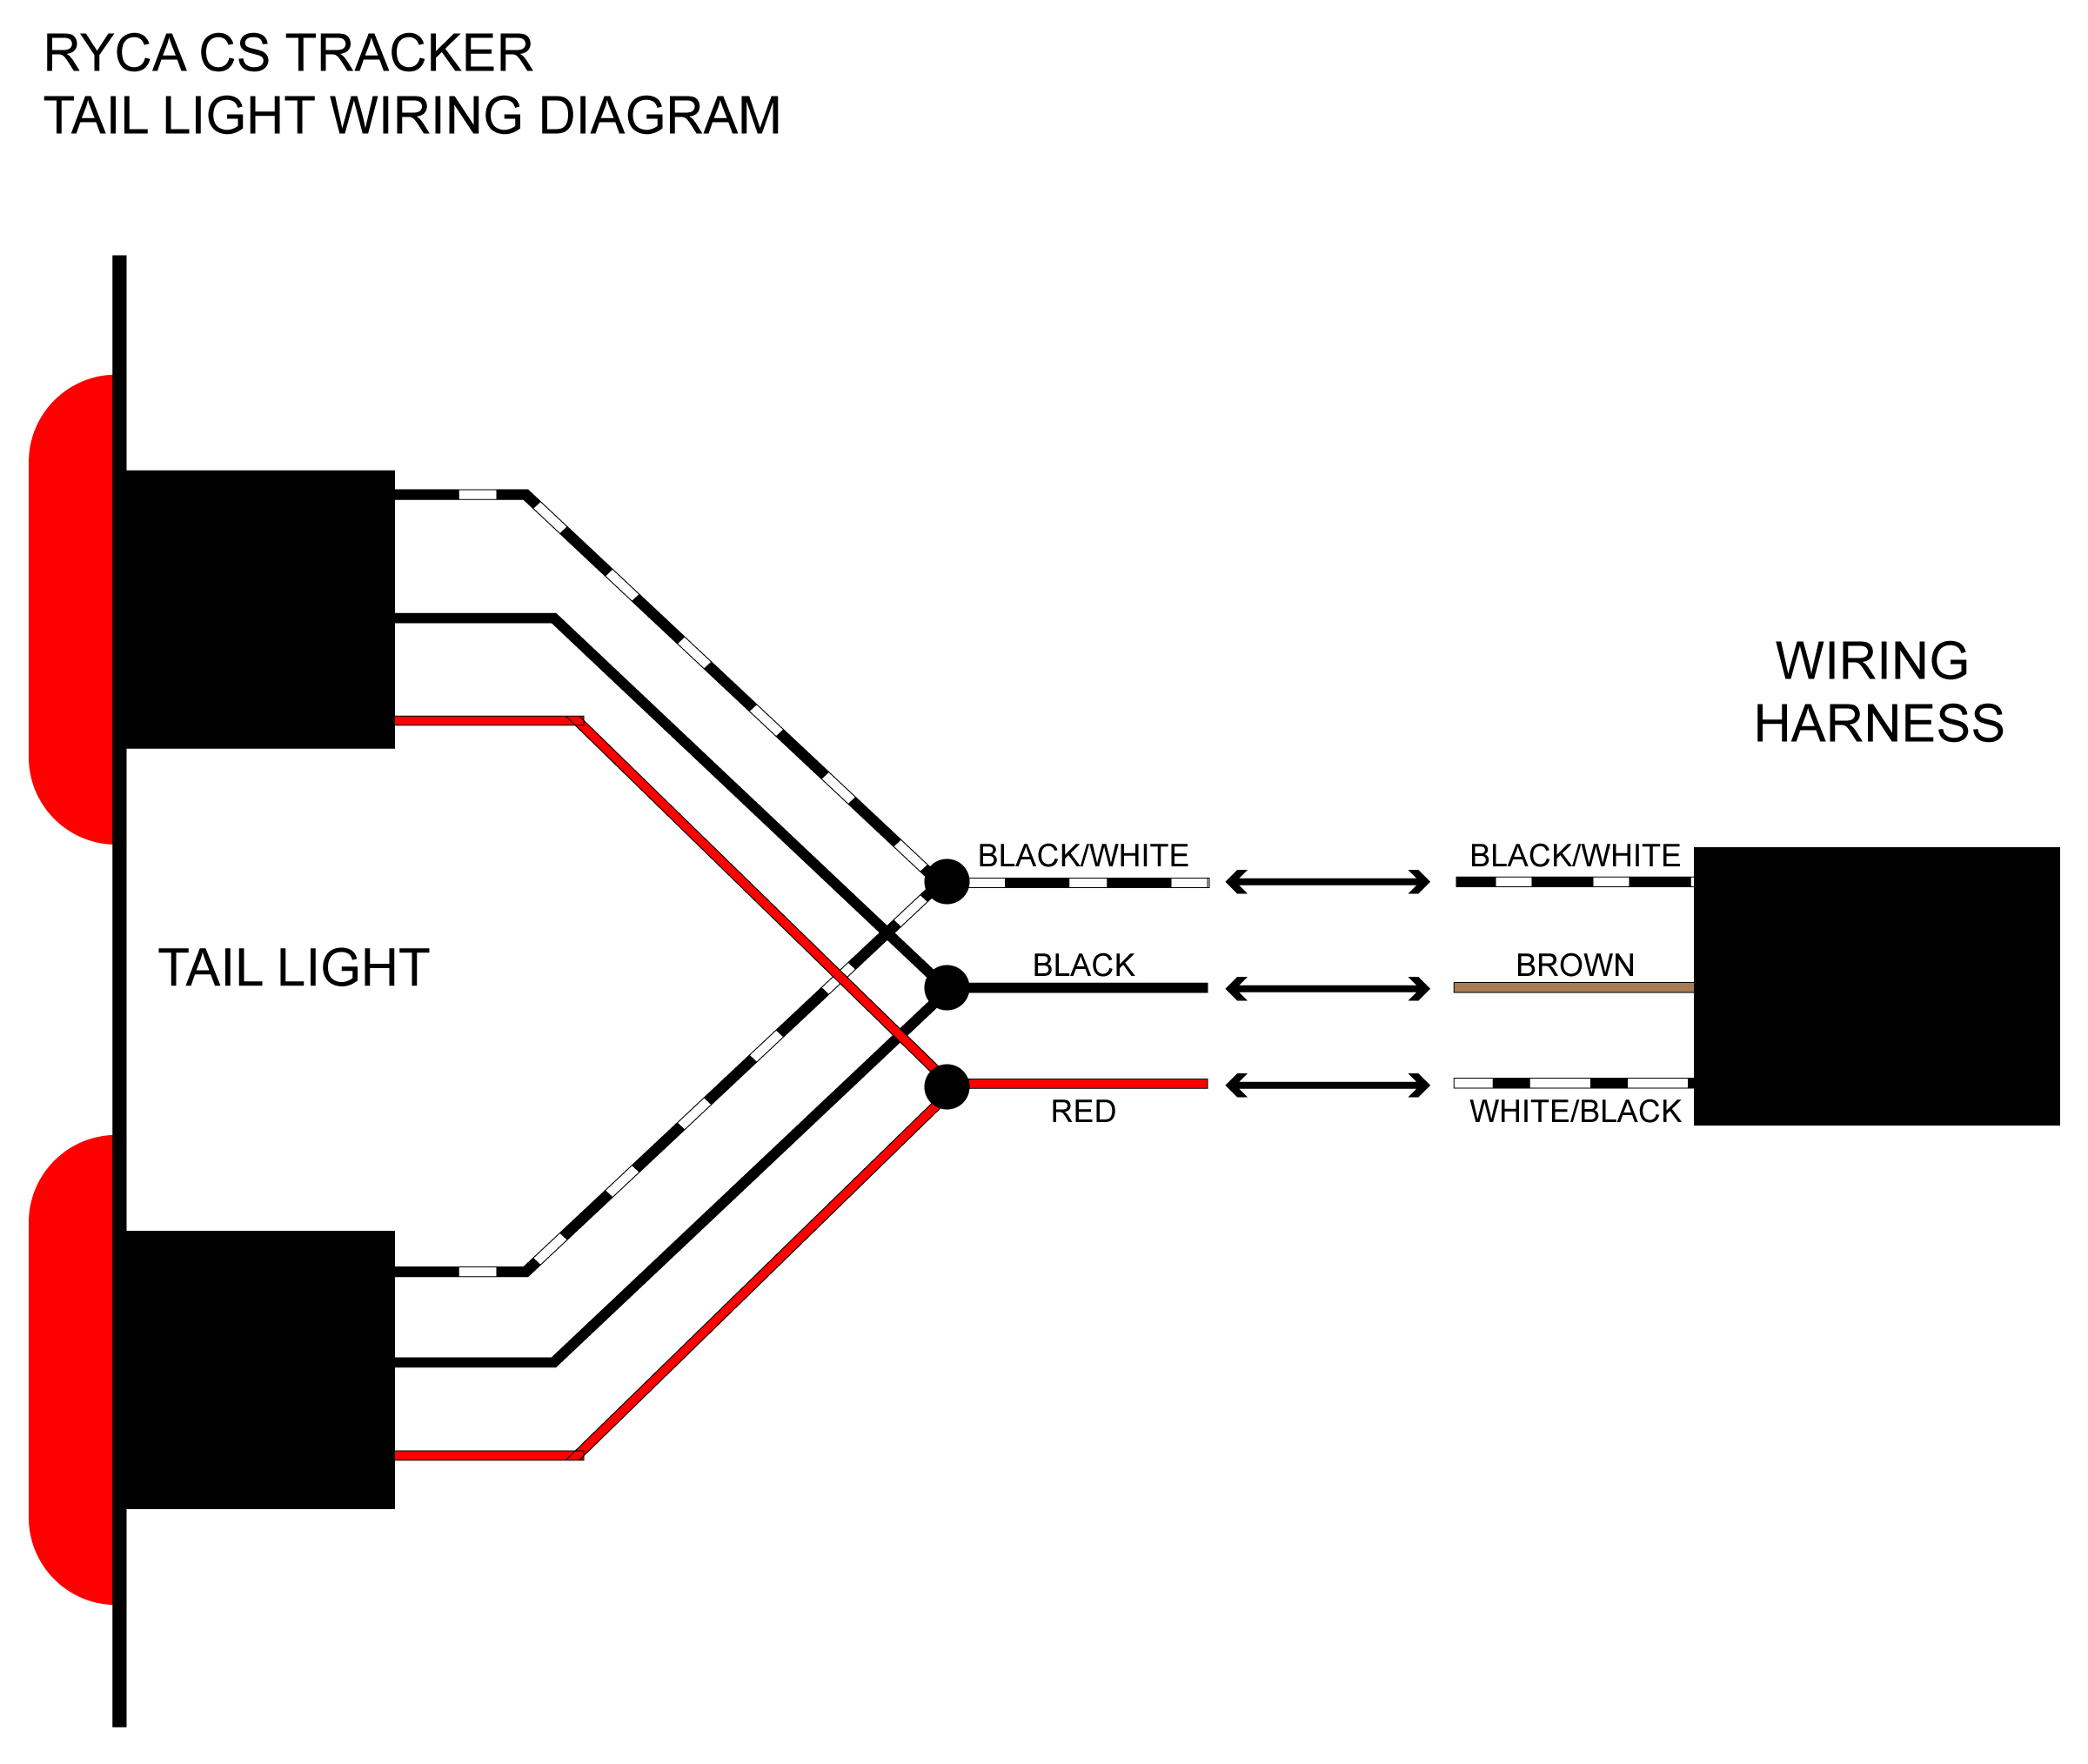 Led Tail Light Wiring Diagram - Wiring Diagrams Thumbs - Tail Light Wiring Diagram